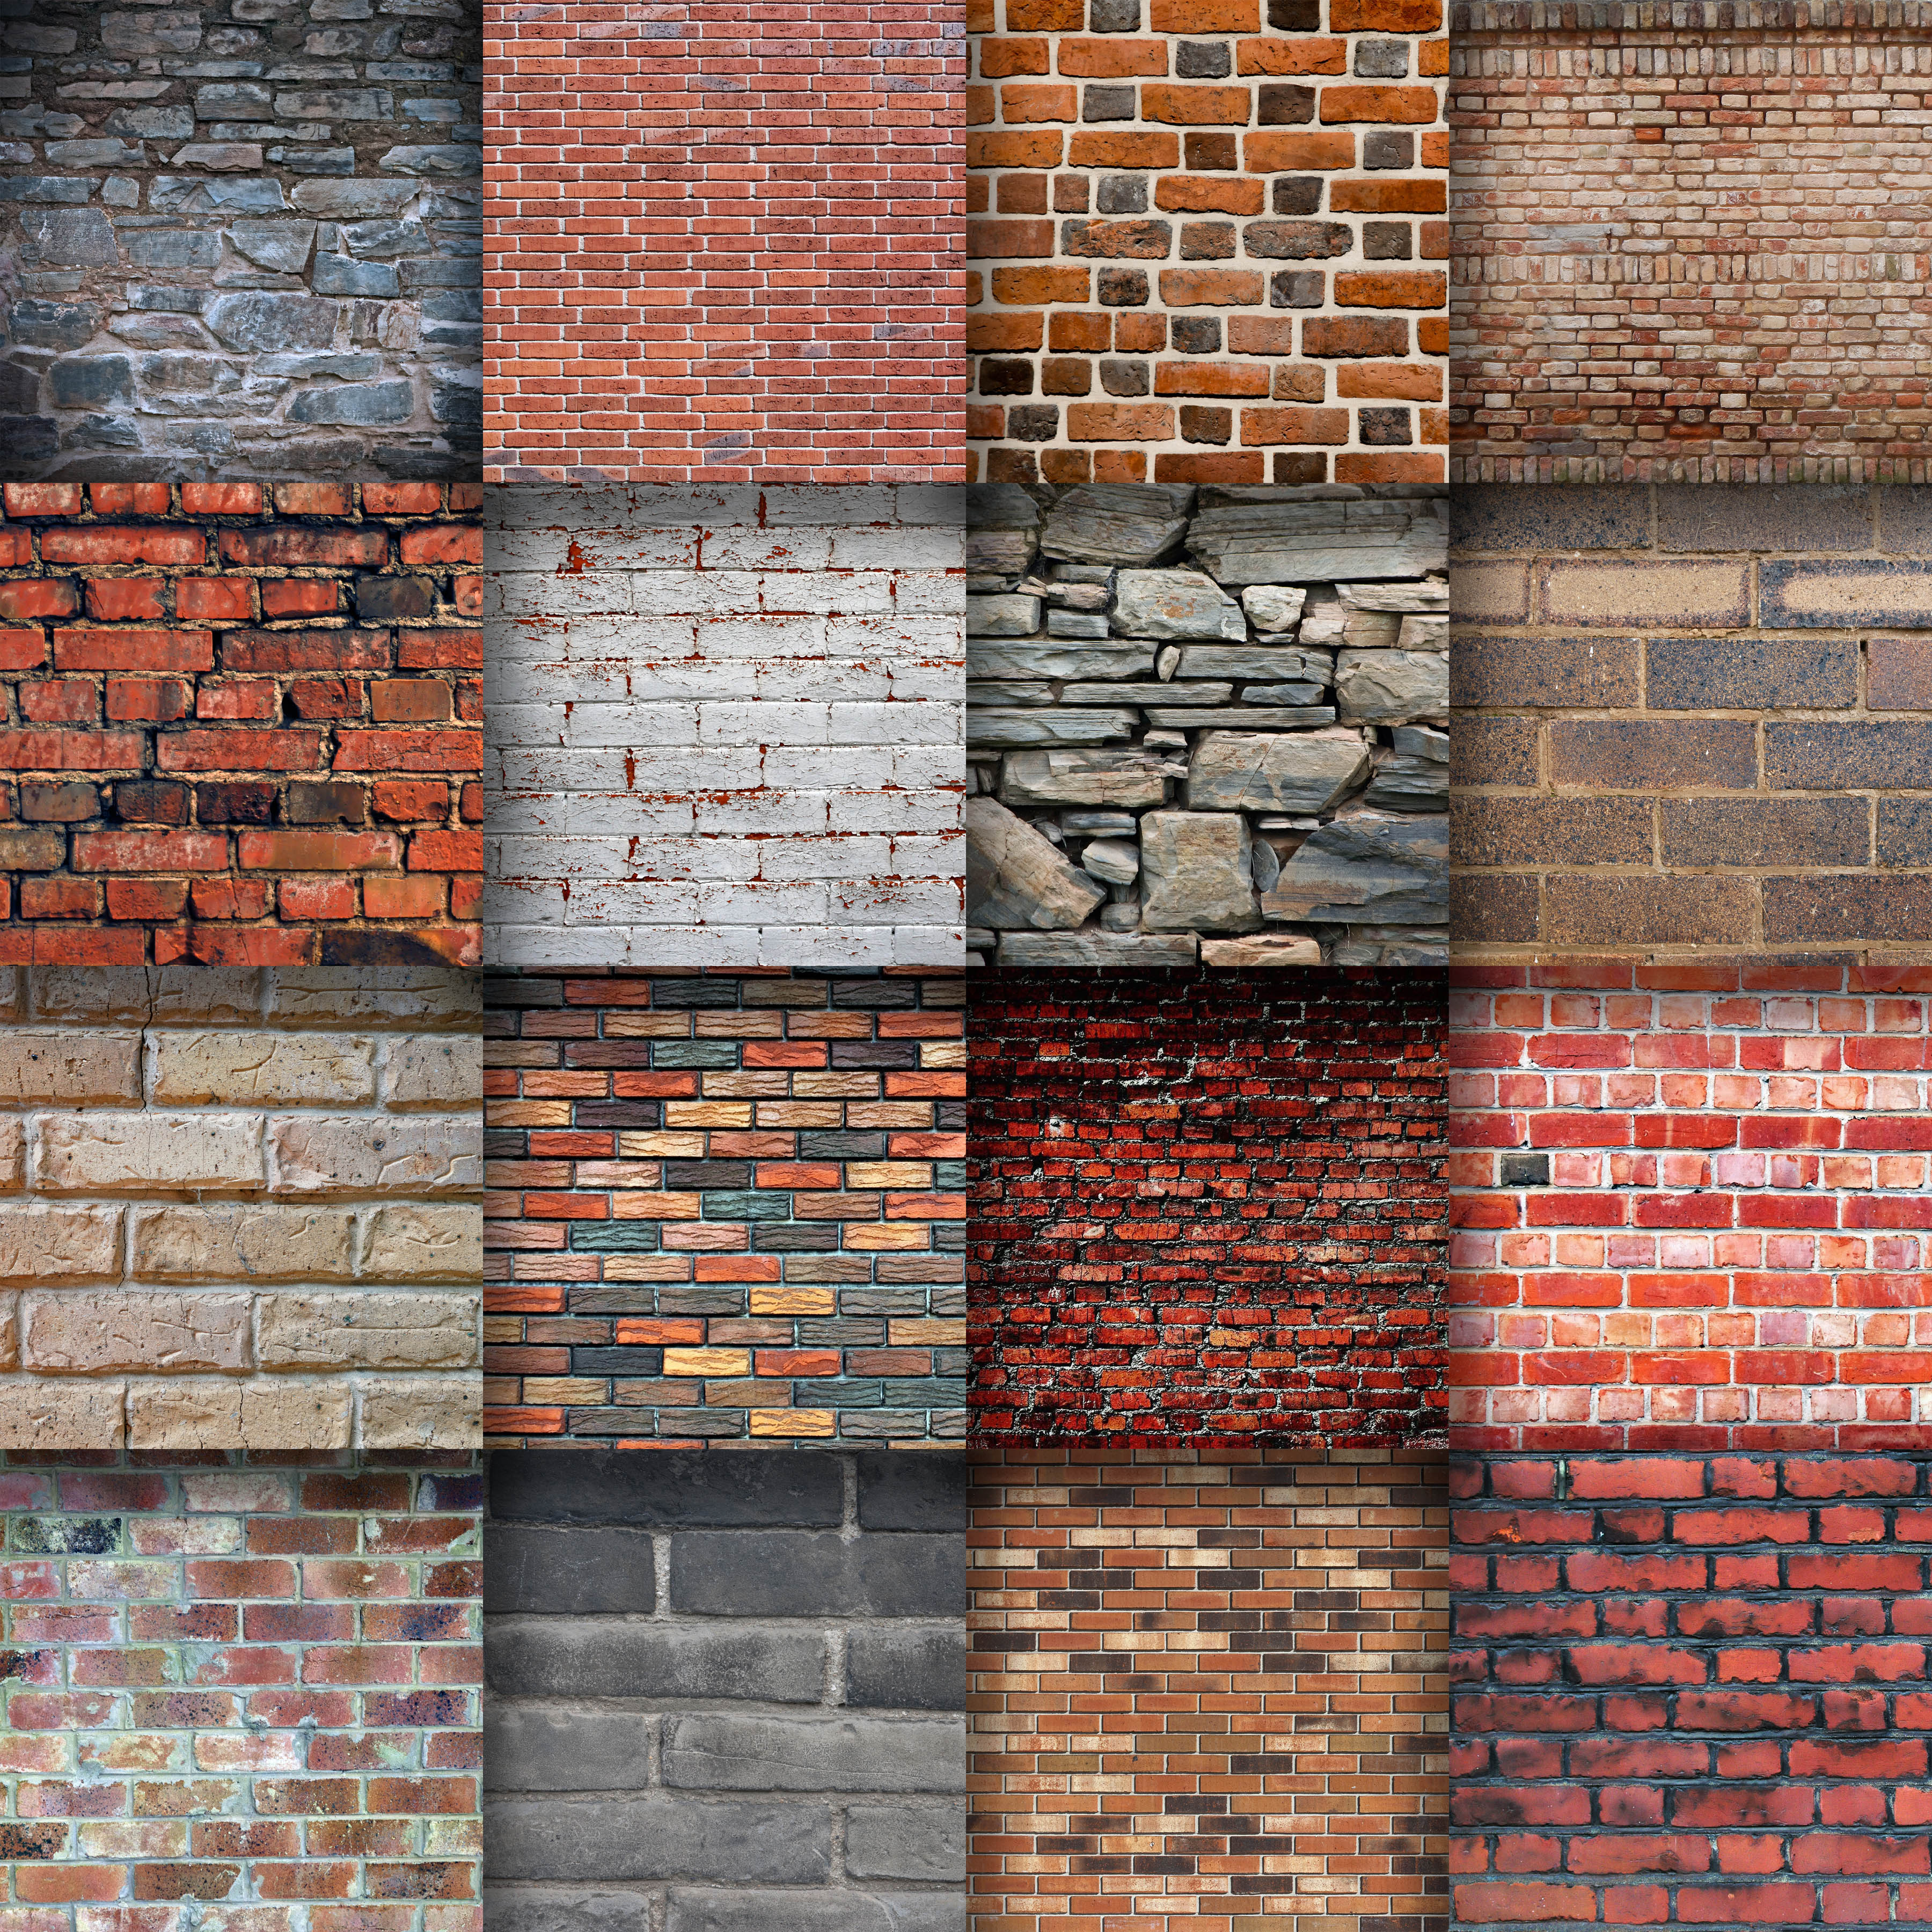 Brick Wall Digital Paper Textures Graphic Backgrounds By oldmarketdesigns - Image 2